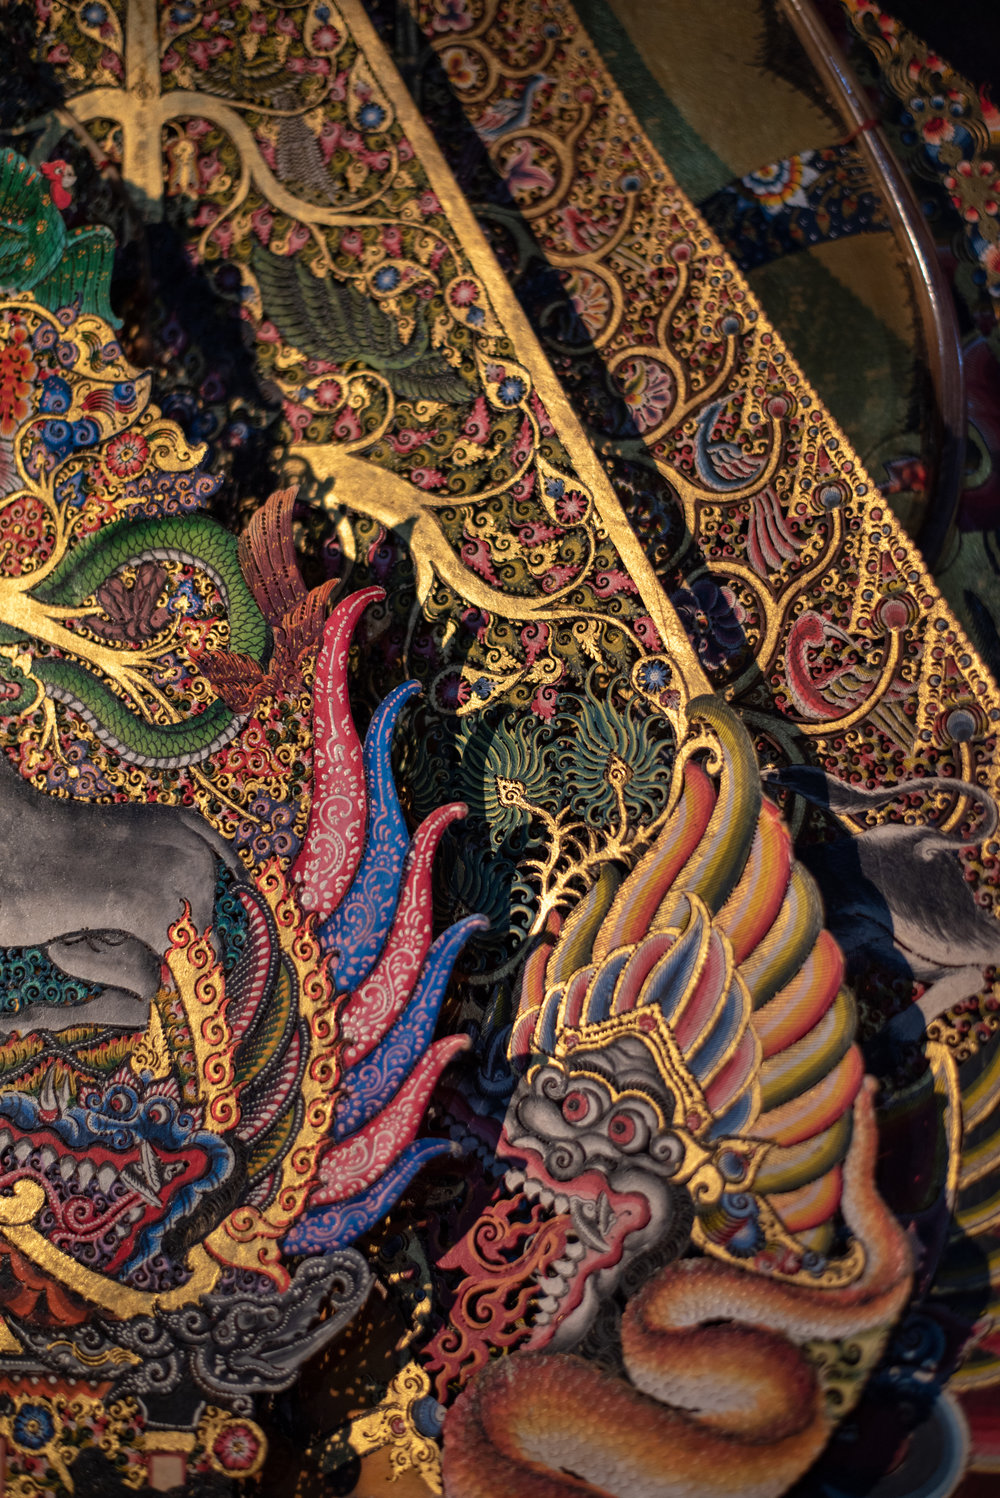 Ornate hand-painted shadow puppets known as Gunungan